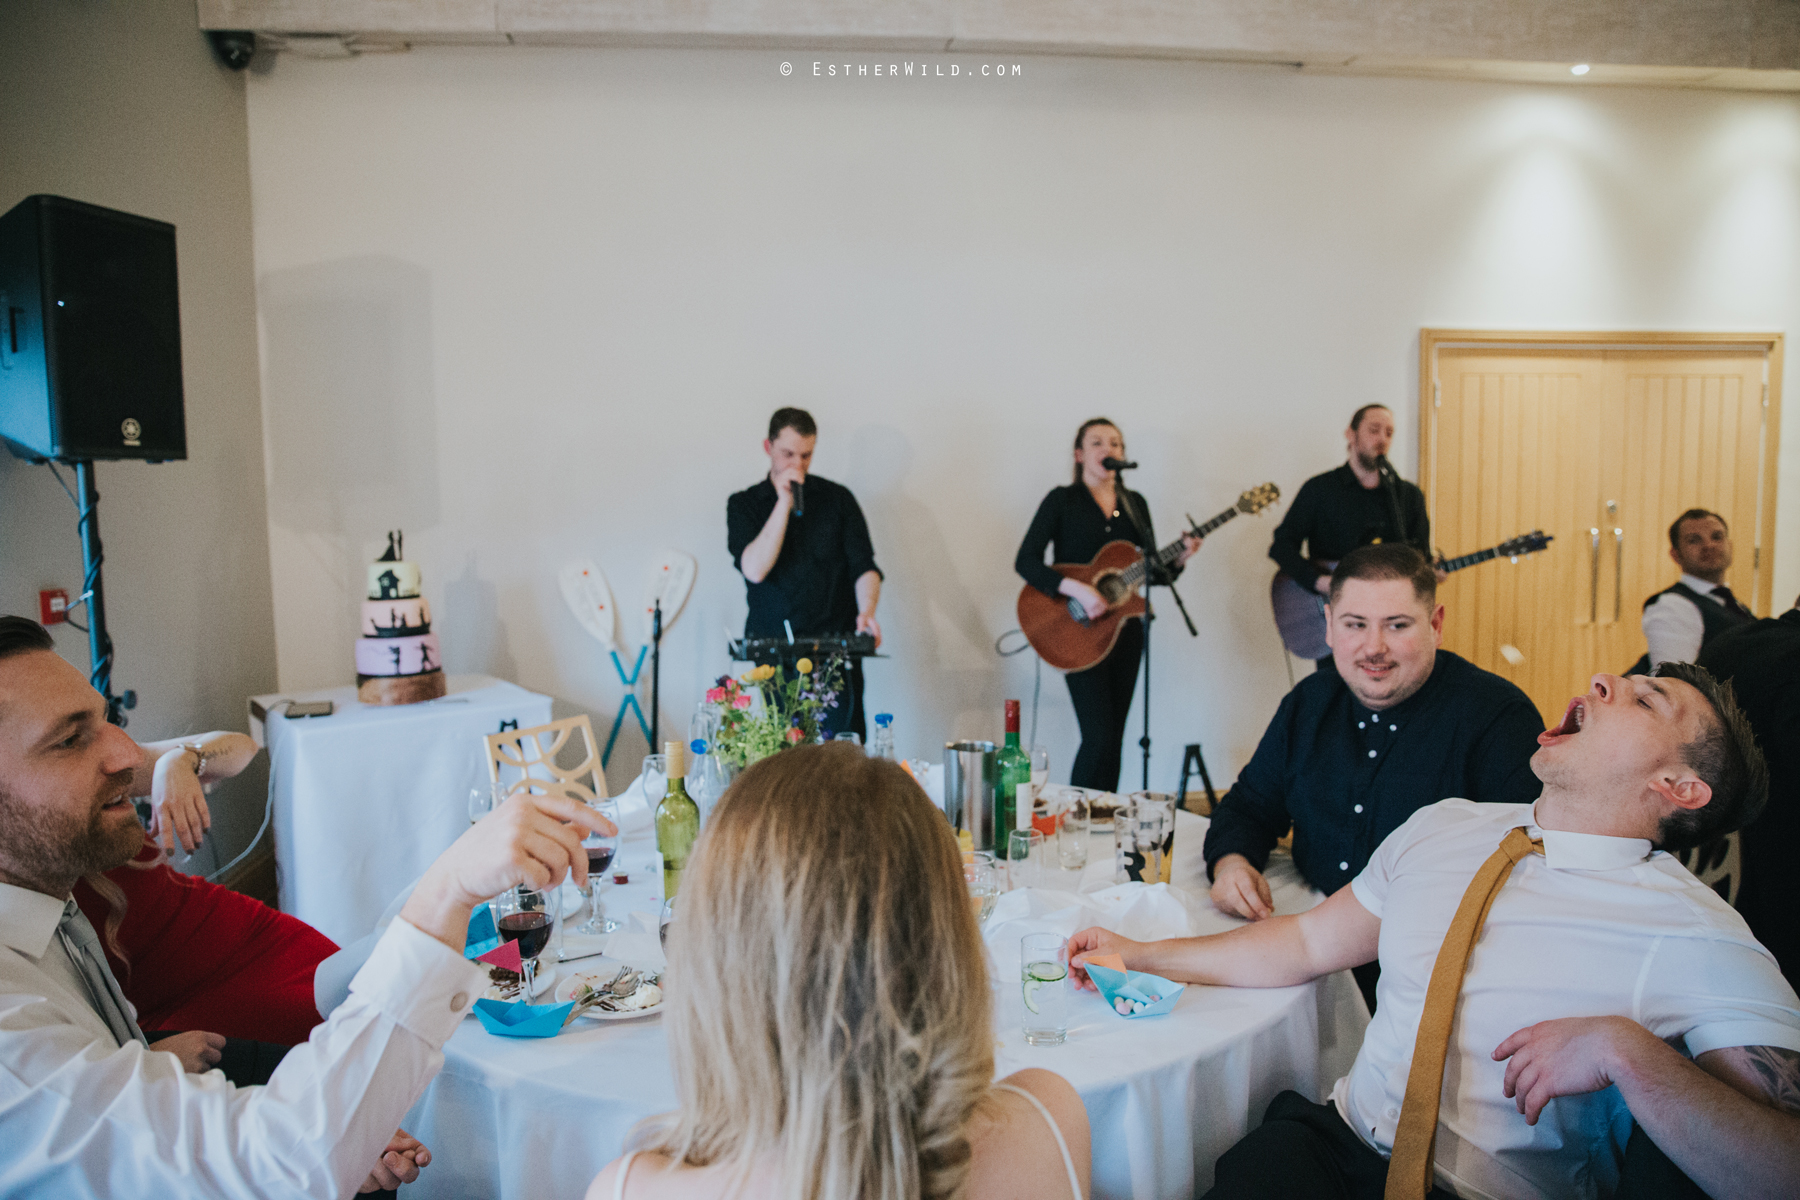 The_BoatHouse_Wedding_Venue_Ormesby_Norfolk_Broads_Boat_Wedding_Photography_Esther_Wild_Photographer_IMG_2719.jpg